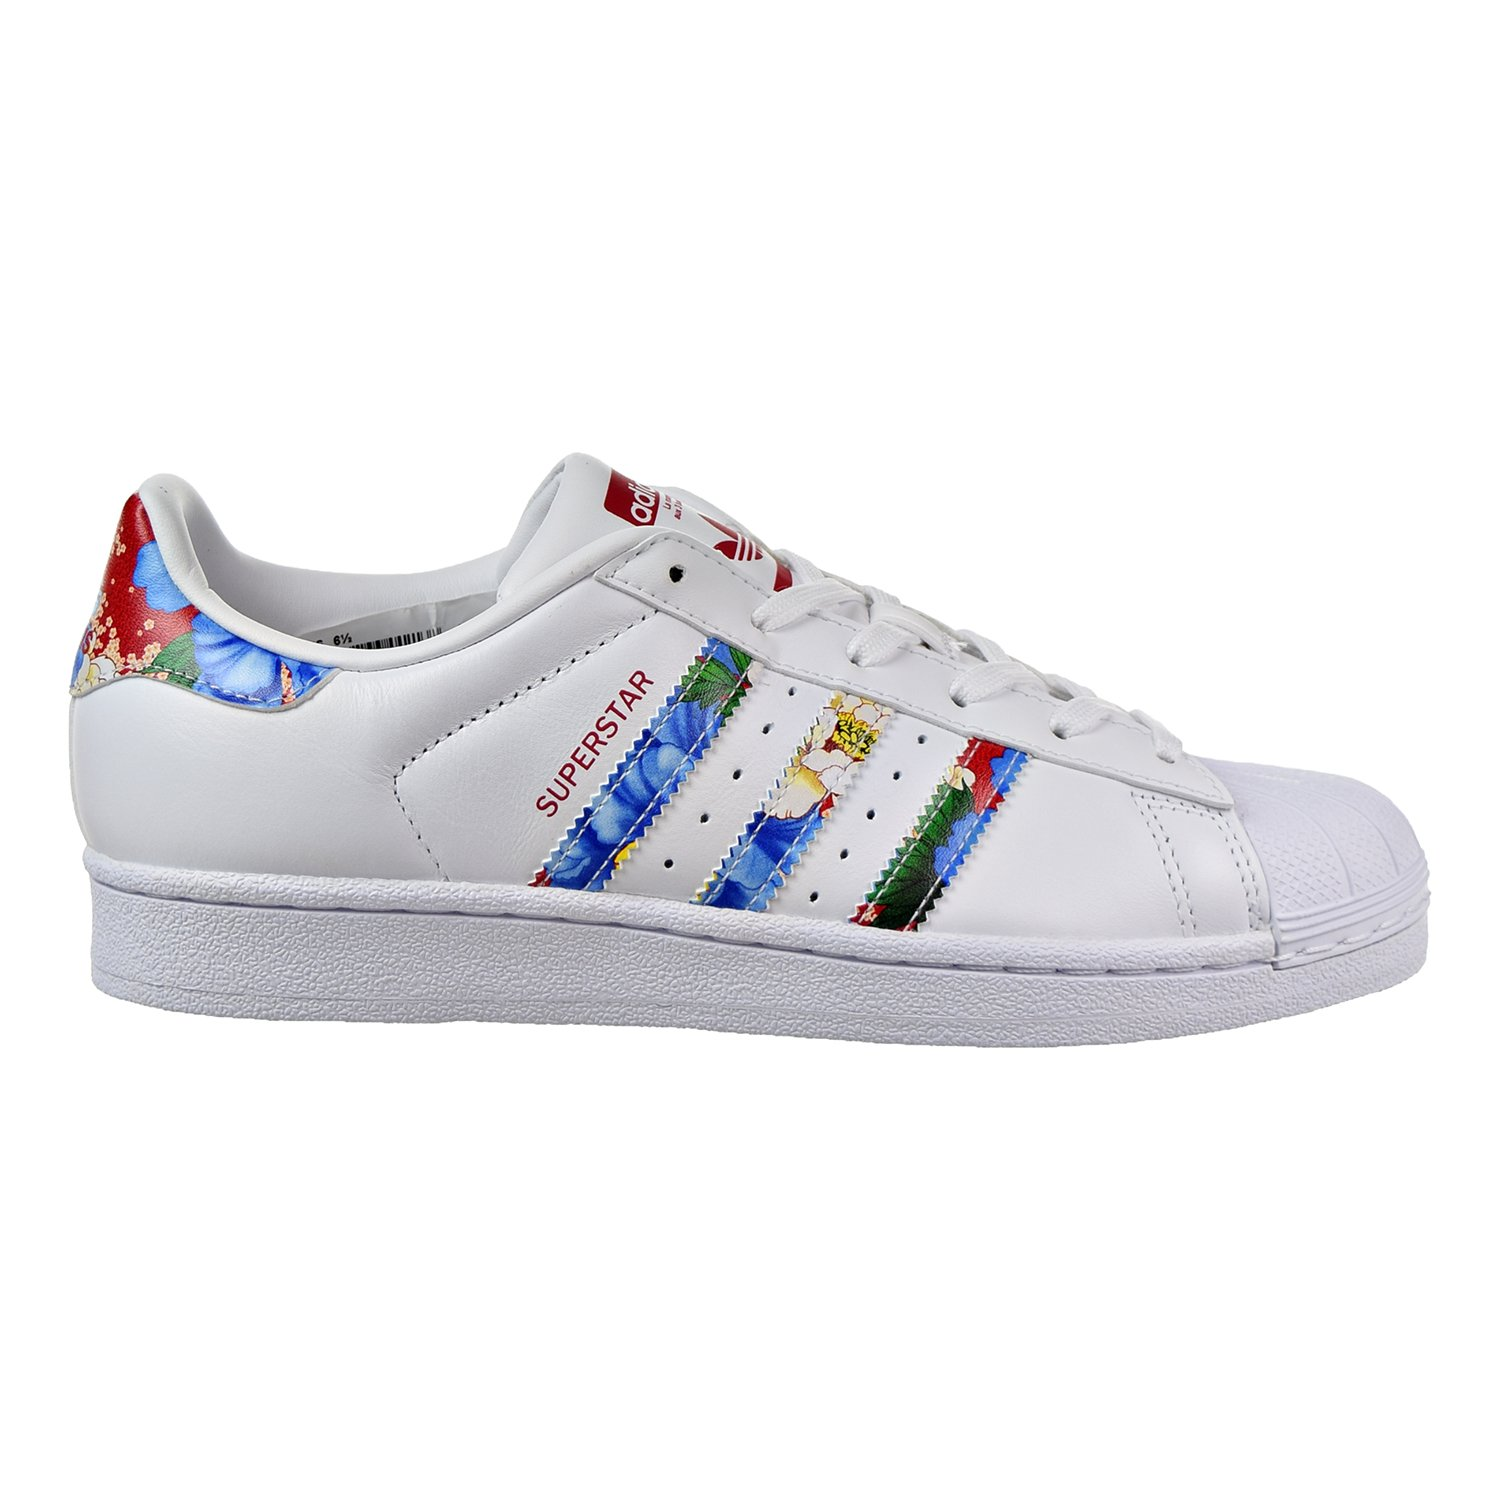 adidas Originals Women's Superstar (Womens 11, White/Red/Multi Color bb0532 (6331))